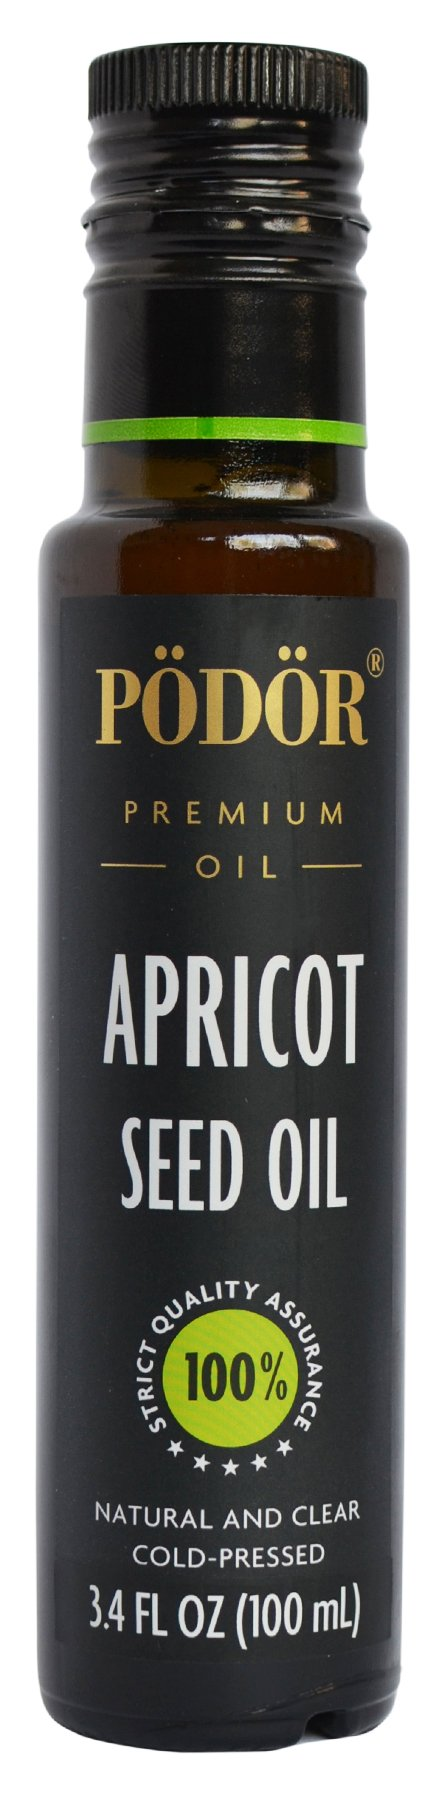 PÖDÖR Premium Apricot Seed Oil - 3.4 fl. Oz. - Cold-Pressed, 100% Natural, Unrefined and Unfiltered, Vegan, Gluten-Free, Non-GMO in Glass Bottle